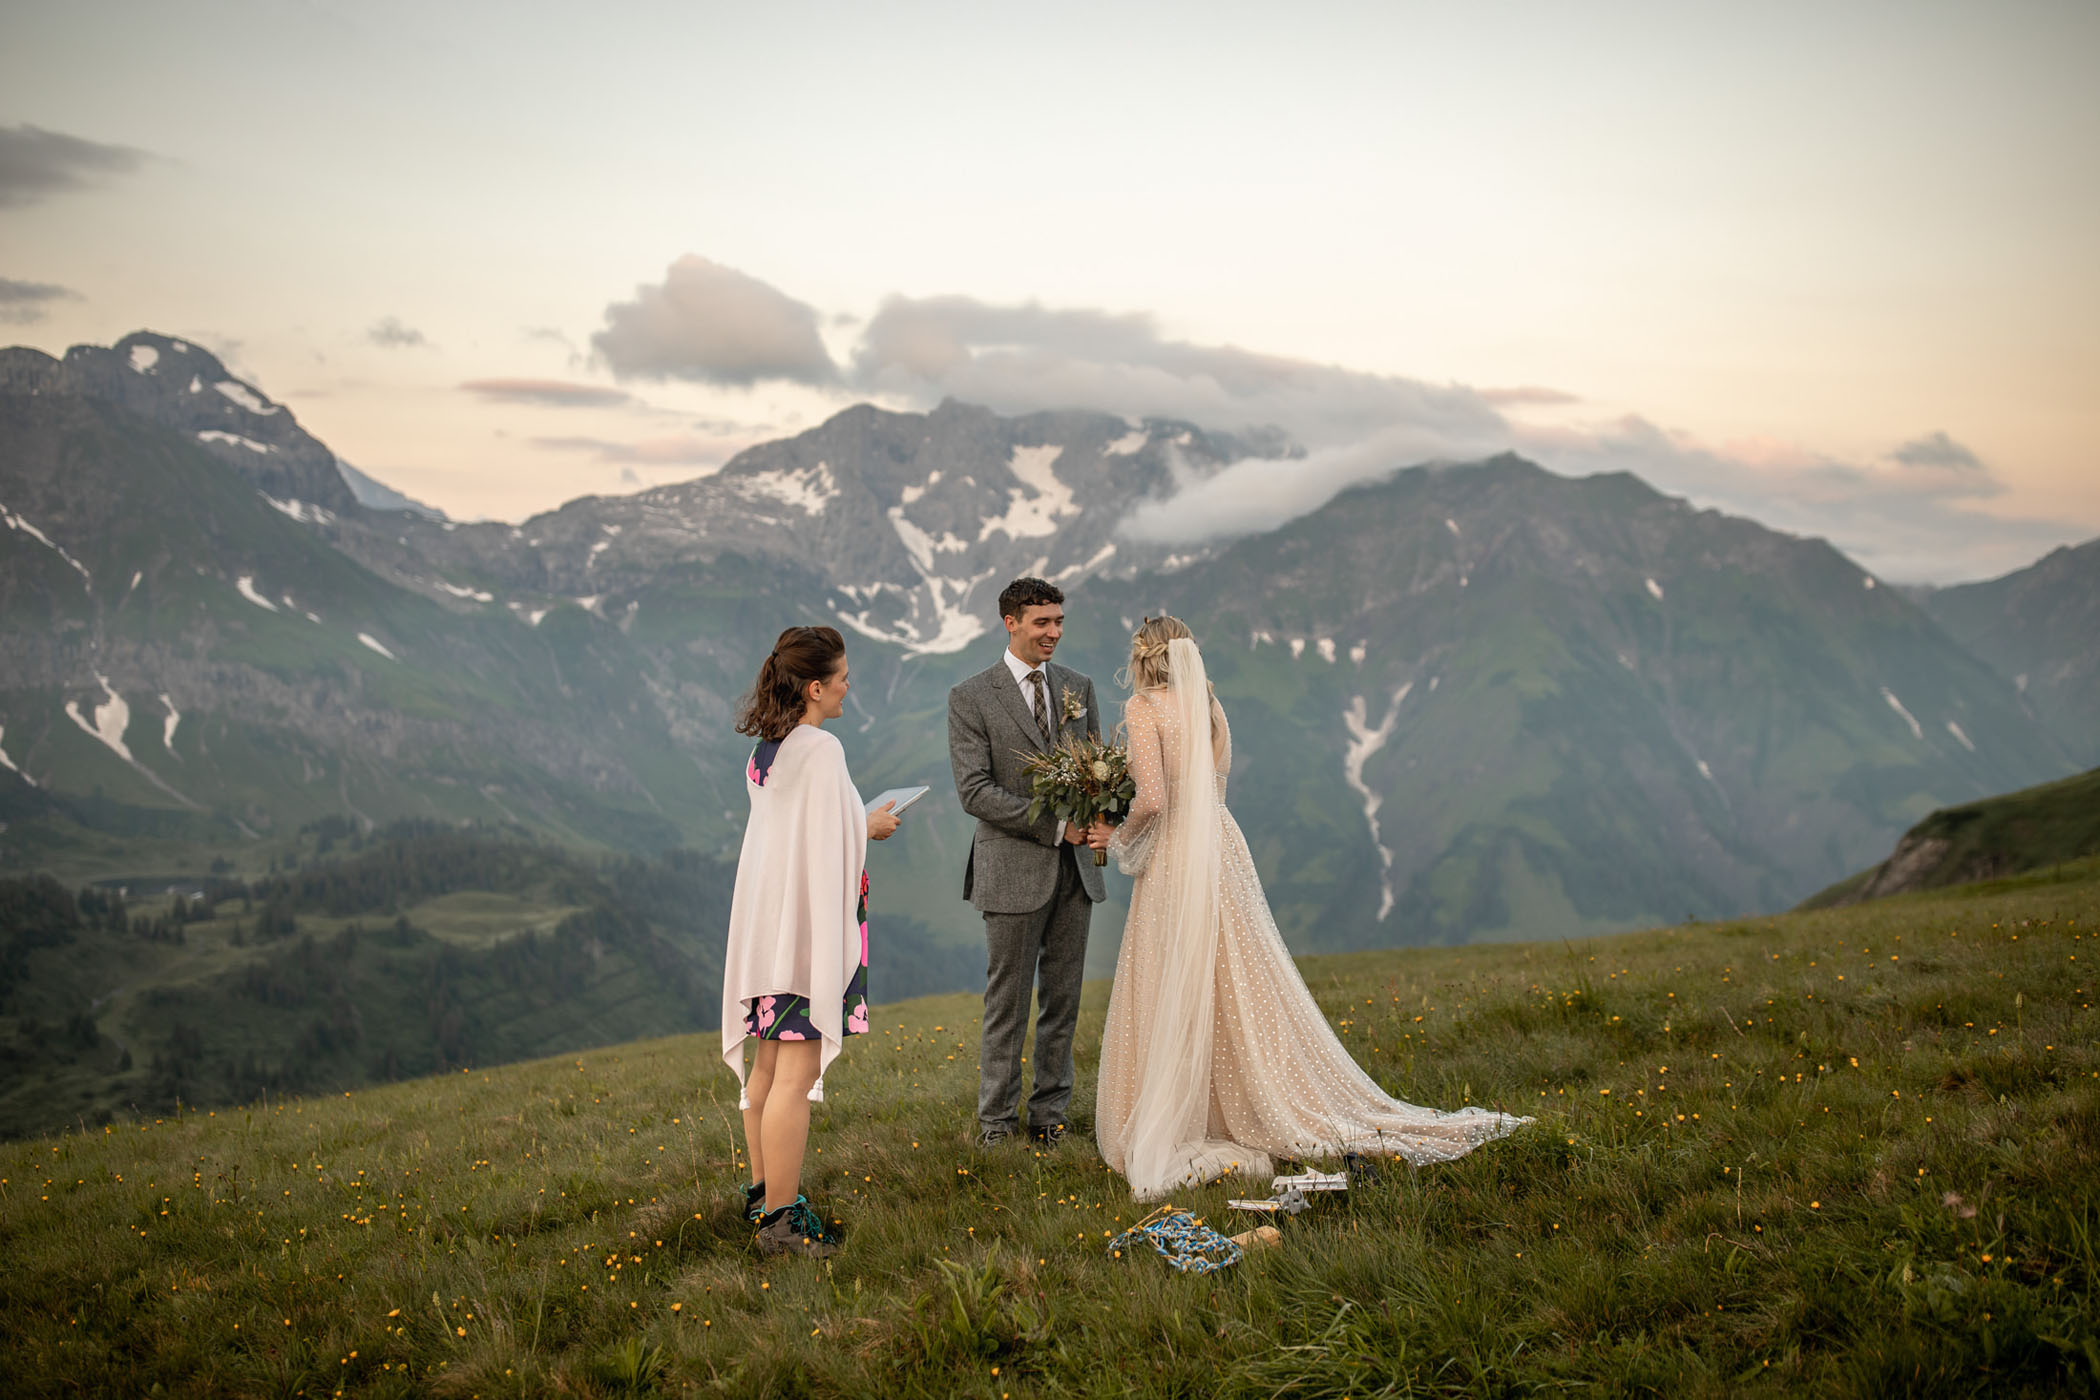 Bride, groom, and minister in front of mountains